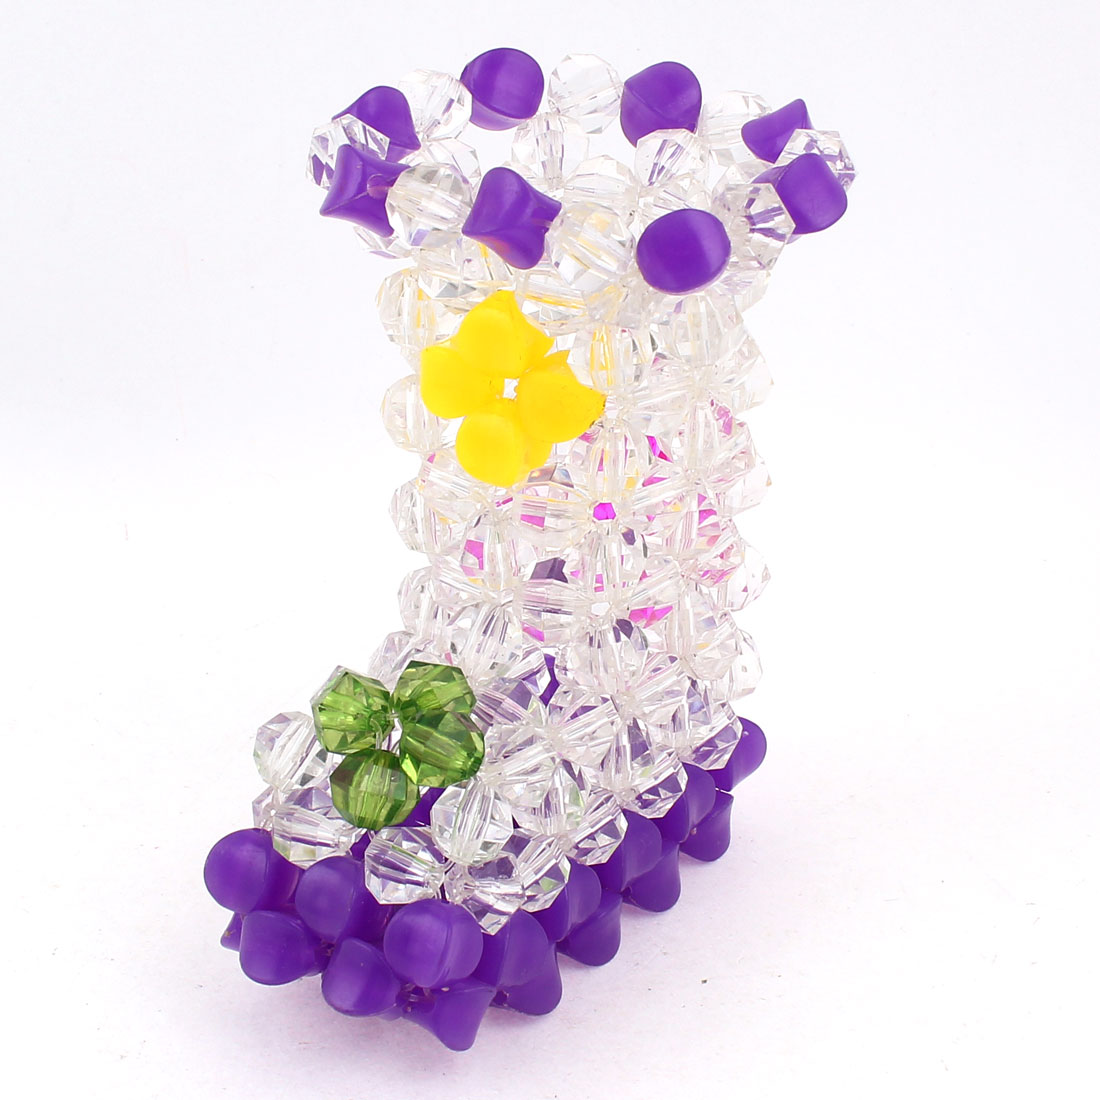 Purple Clear Boot Shaped Handcraft Plastic Crystal Beads Vase Craft Home Ornaments 4.7""